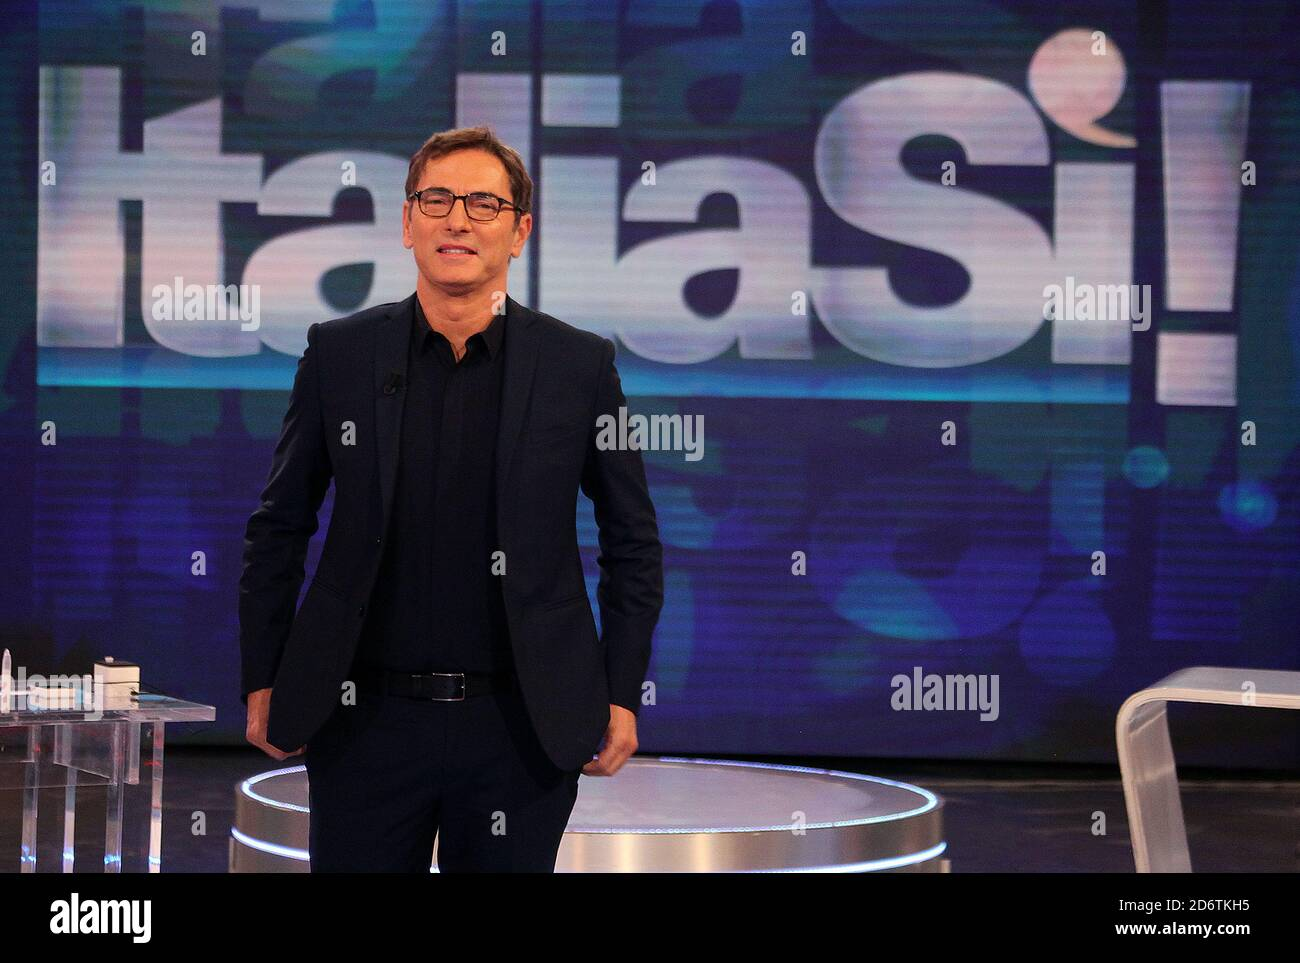 Rome, Italy. 17th Oct, 2020. Rome, Episode of